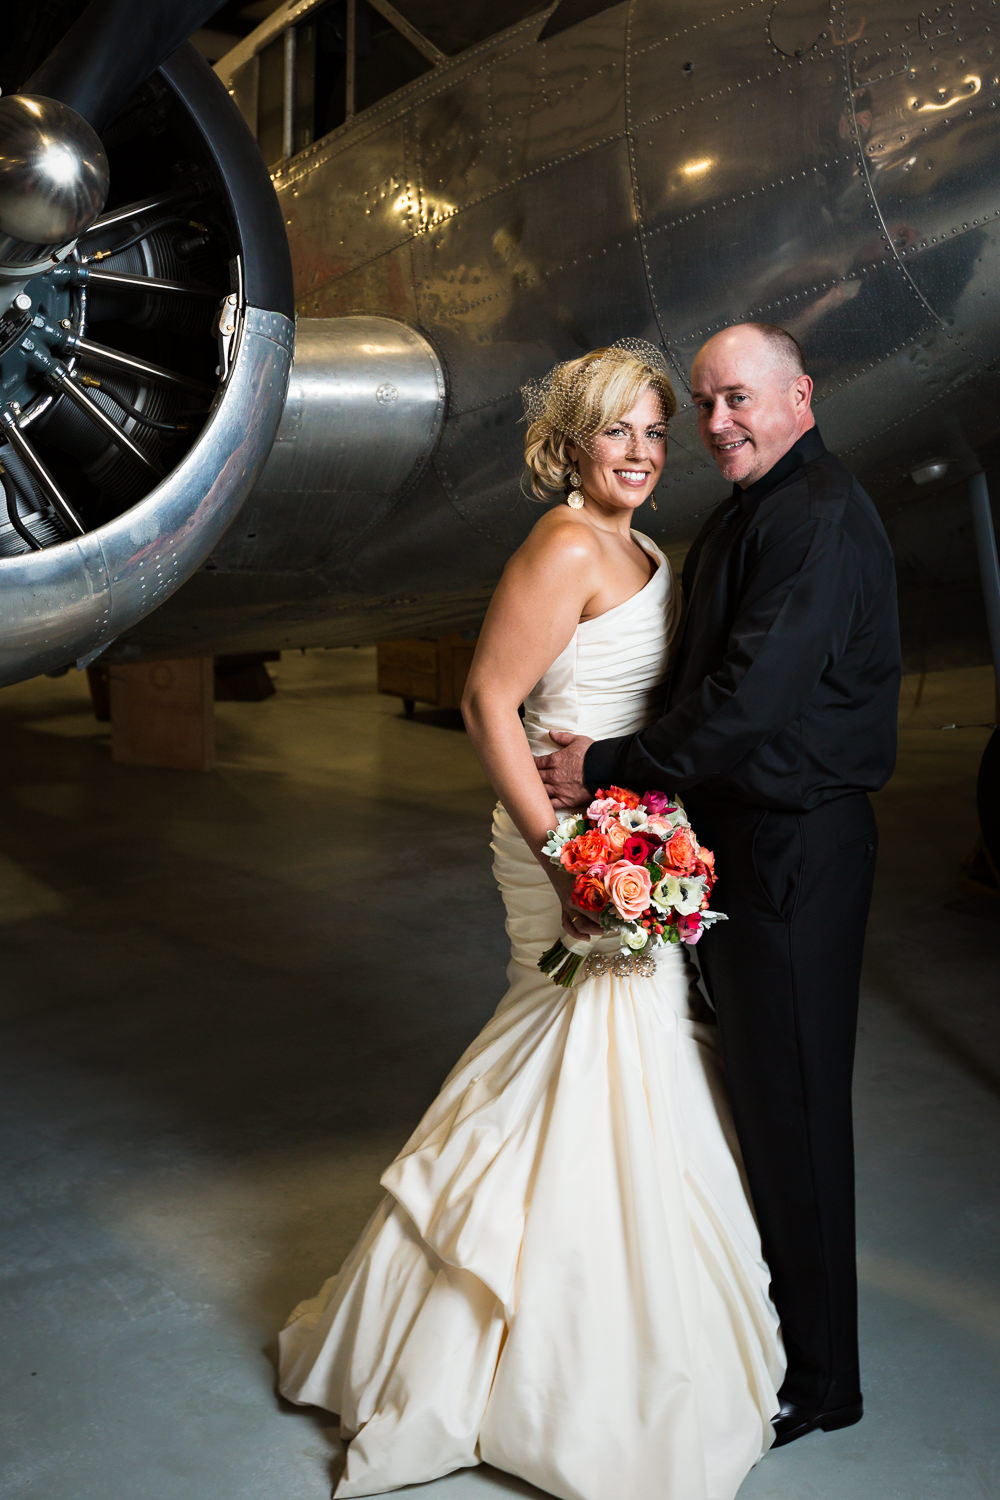 missoula-museum-mountain-flying-wedding-couple-traditional-formal.jpg